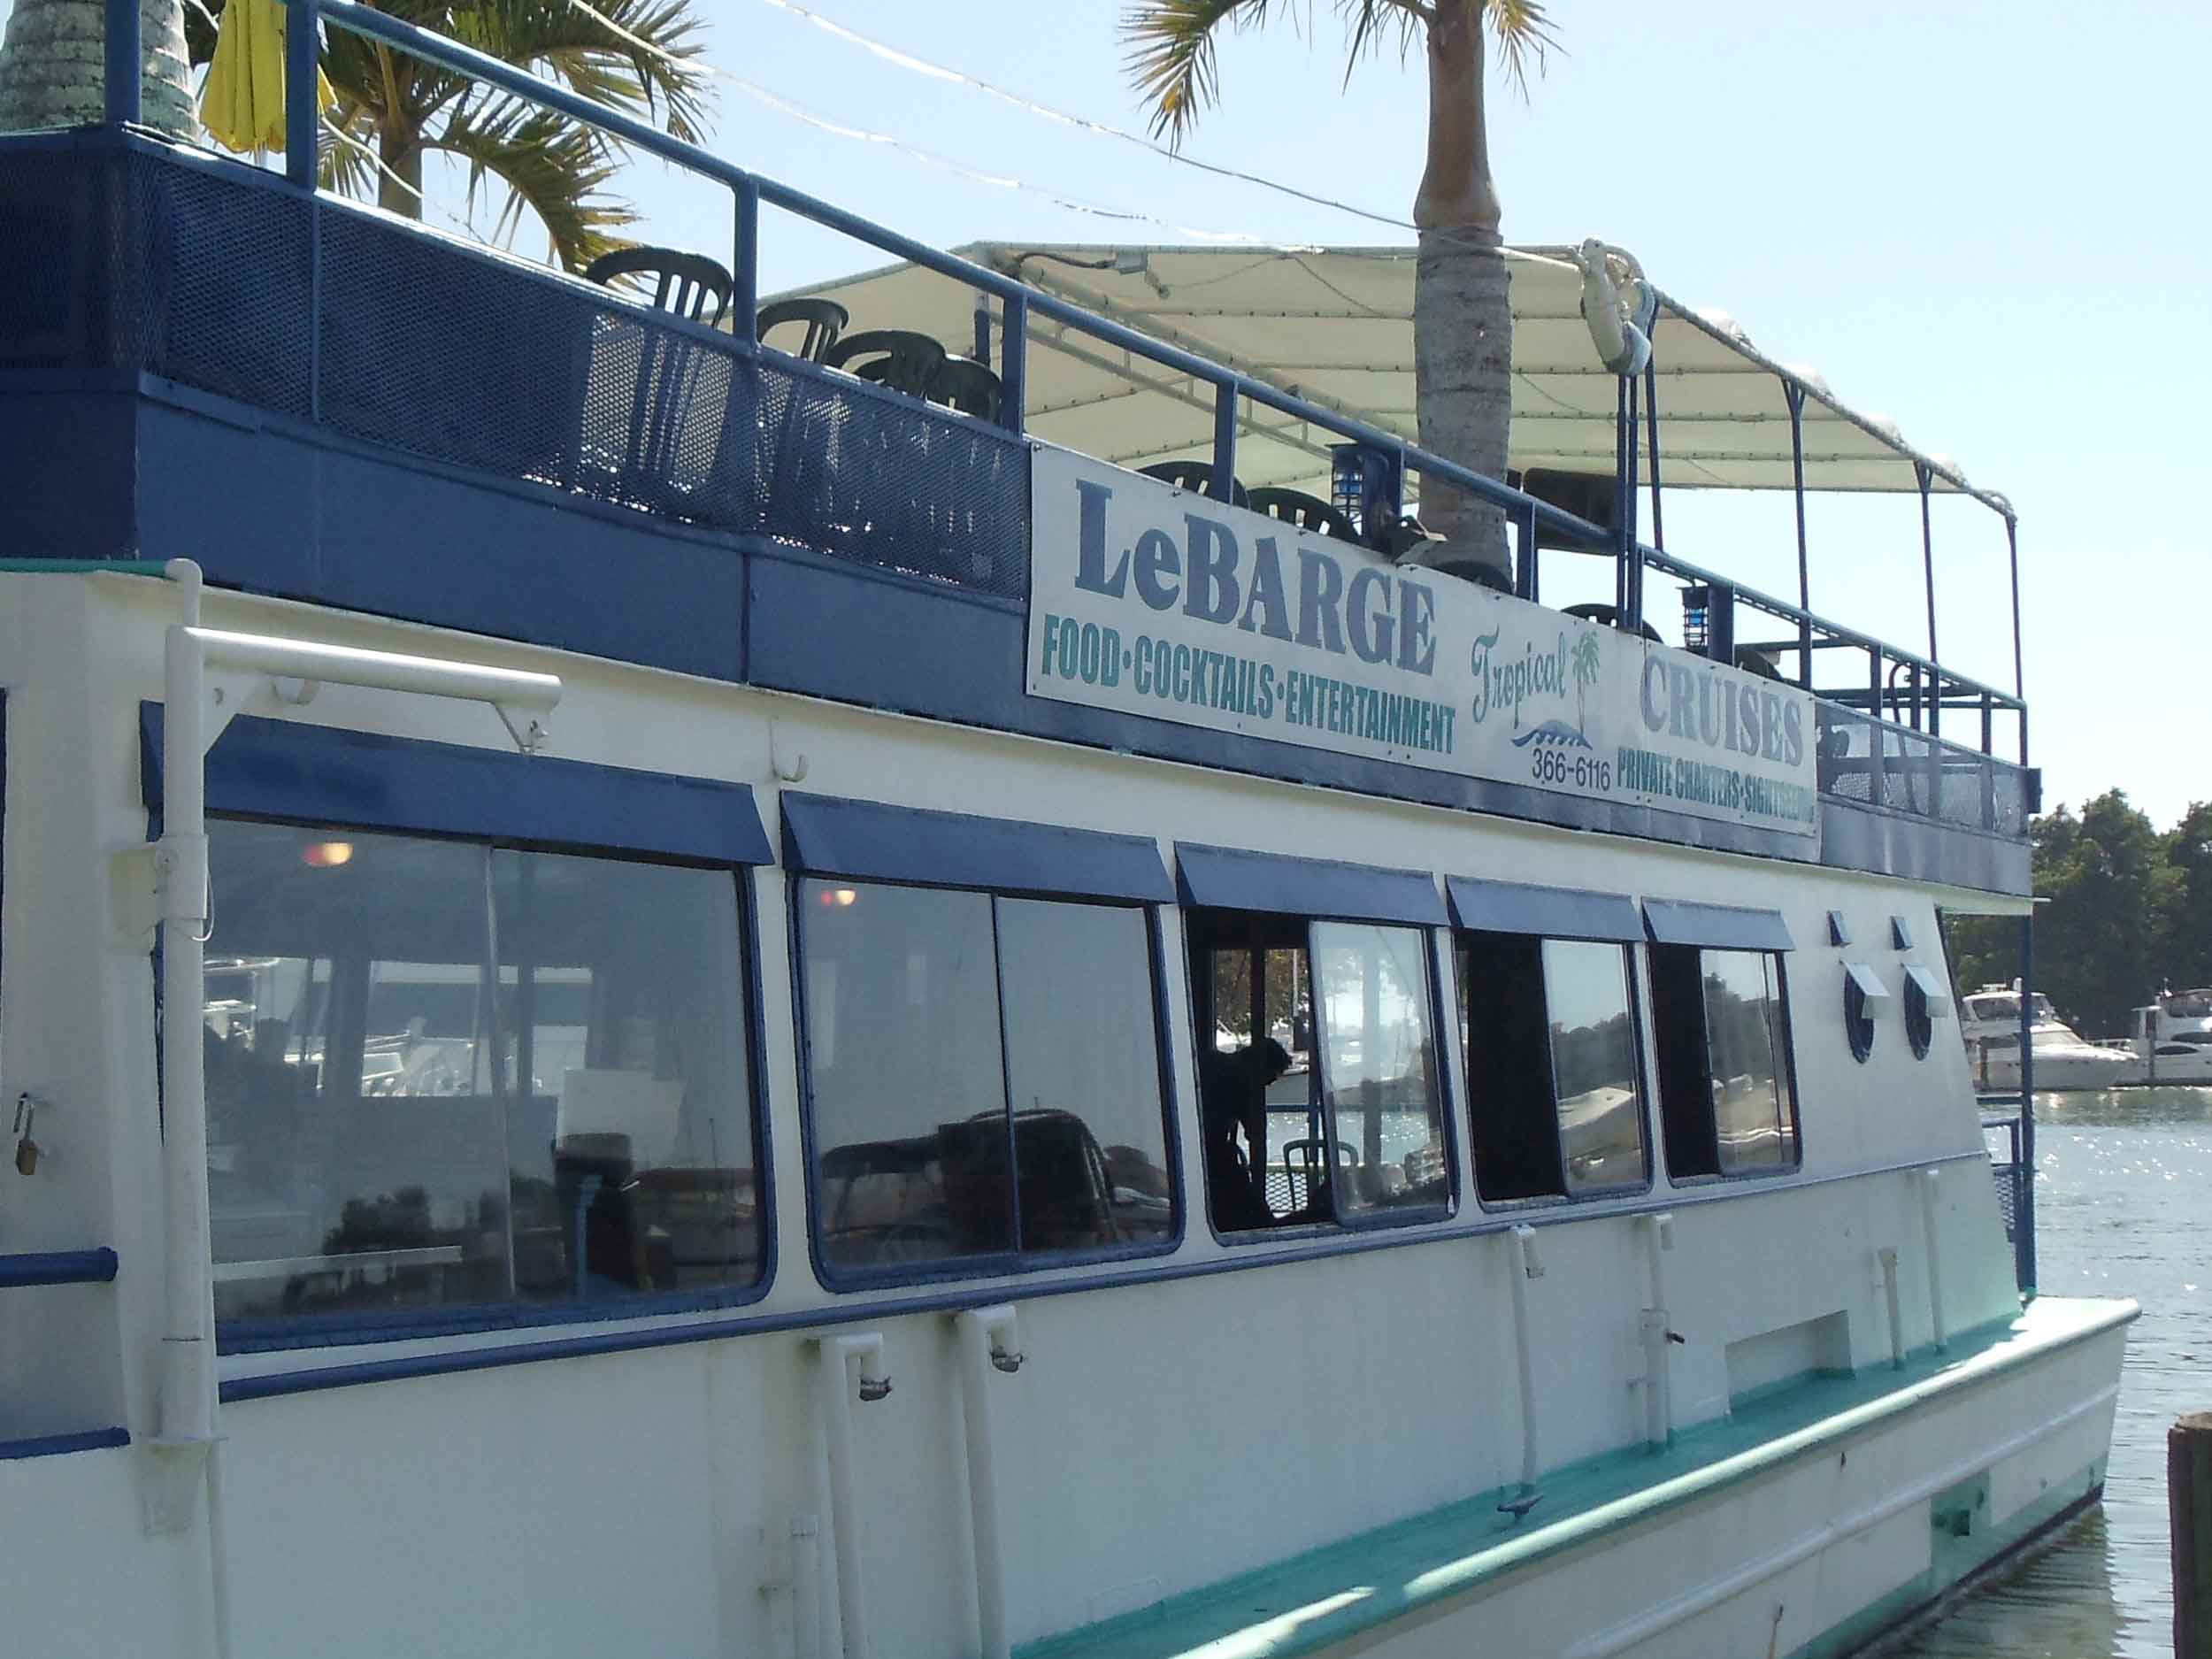 LeBarge Tropical Cruise Exterior